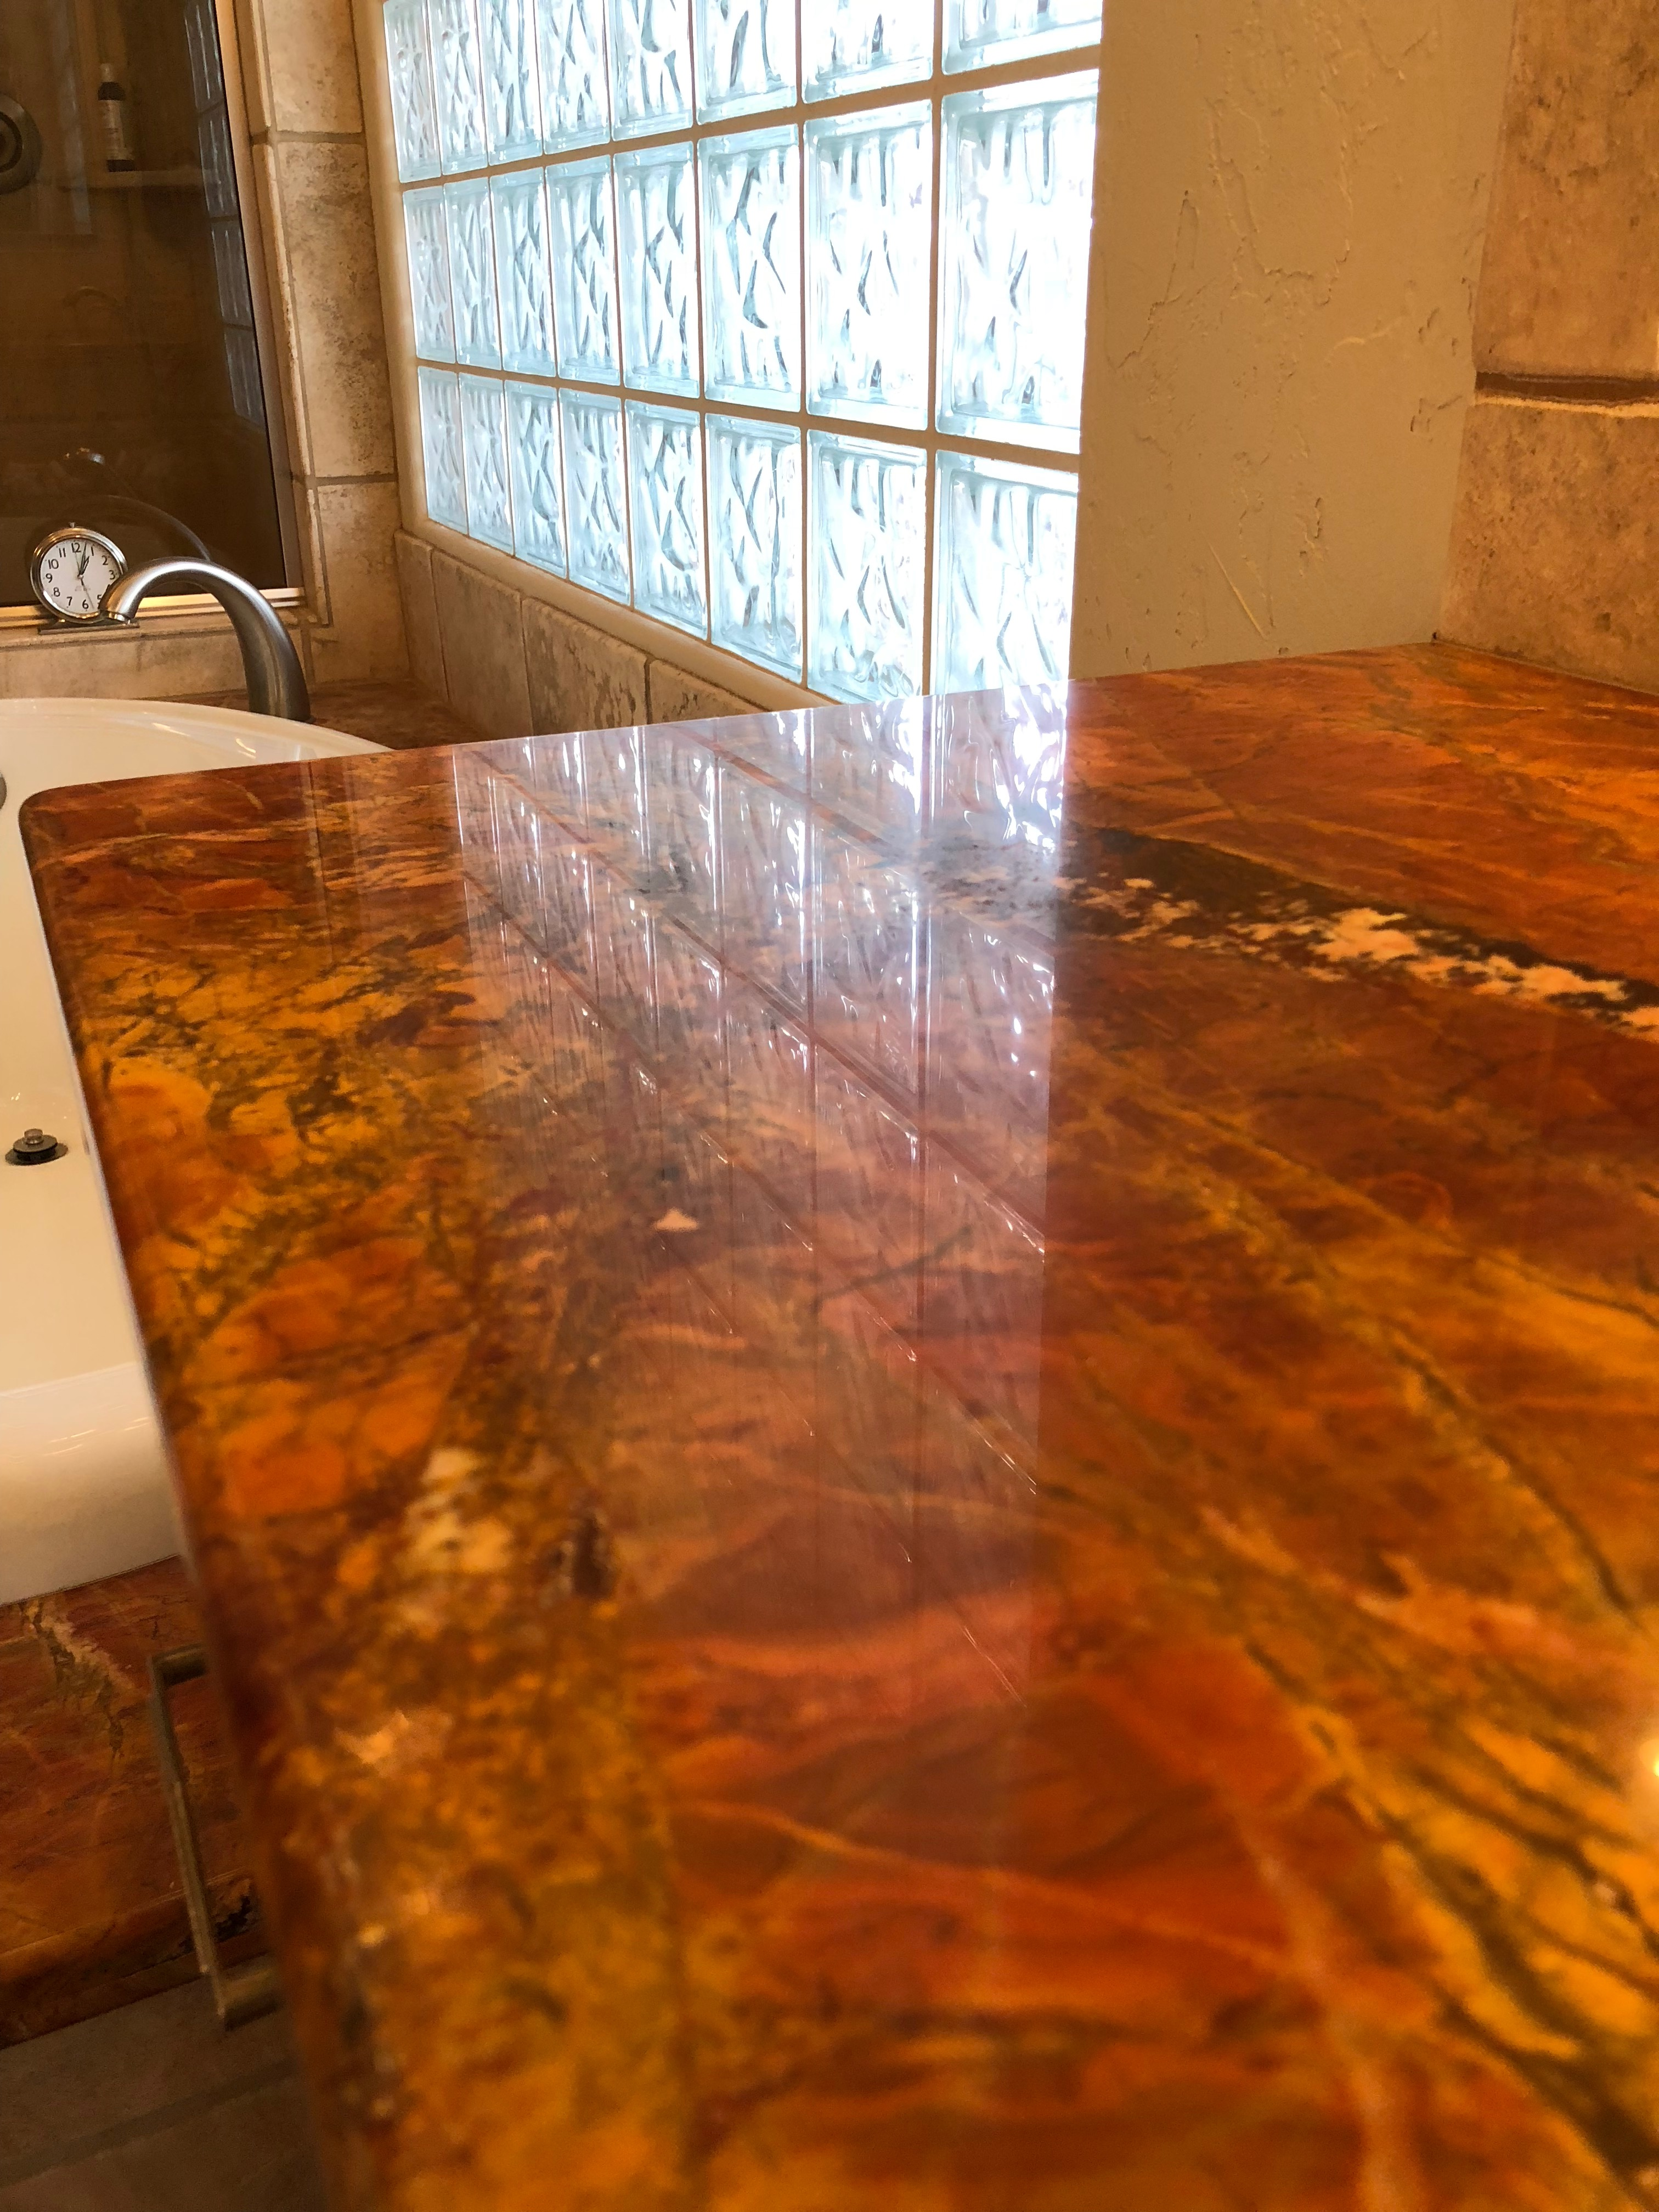 After grinding and polishing, the marble surface looks like new once again.